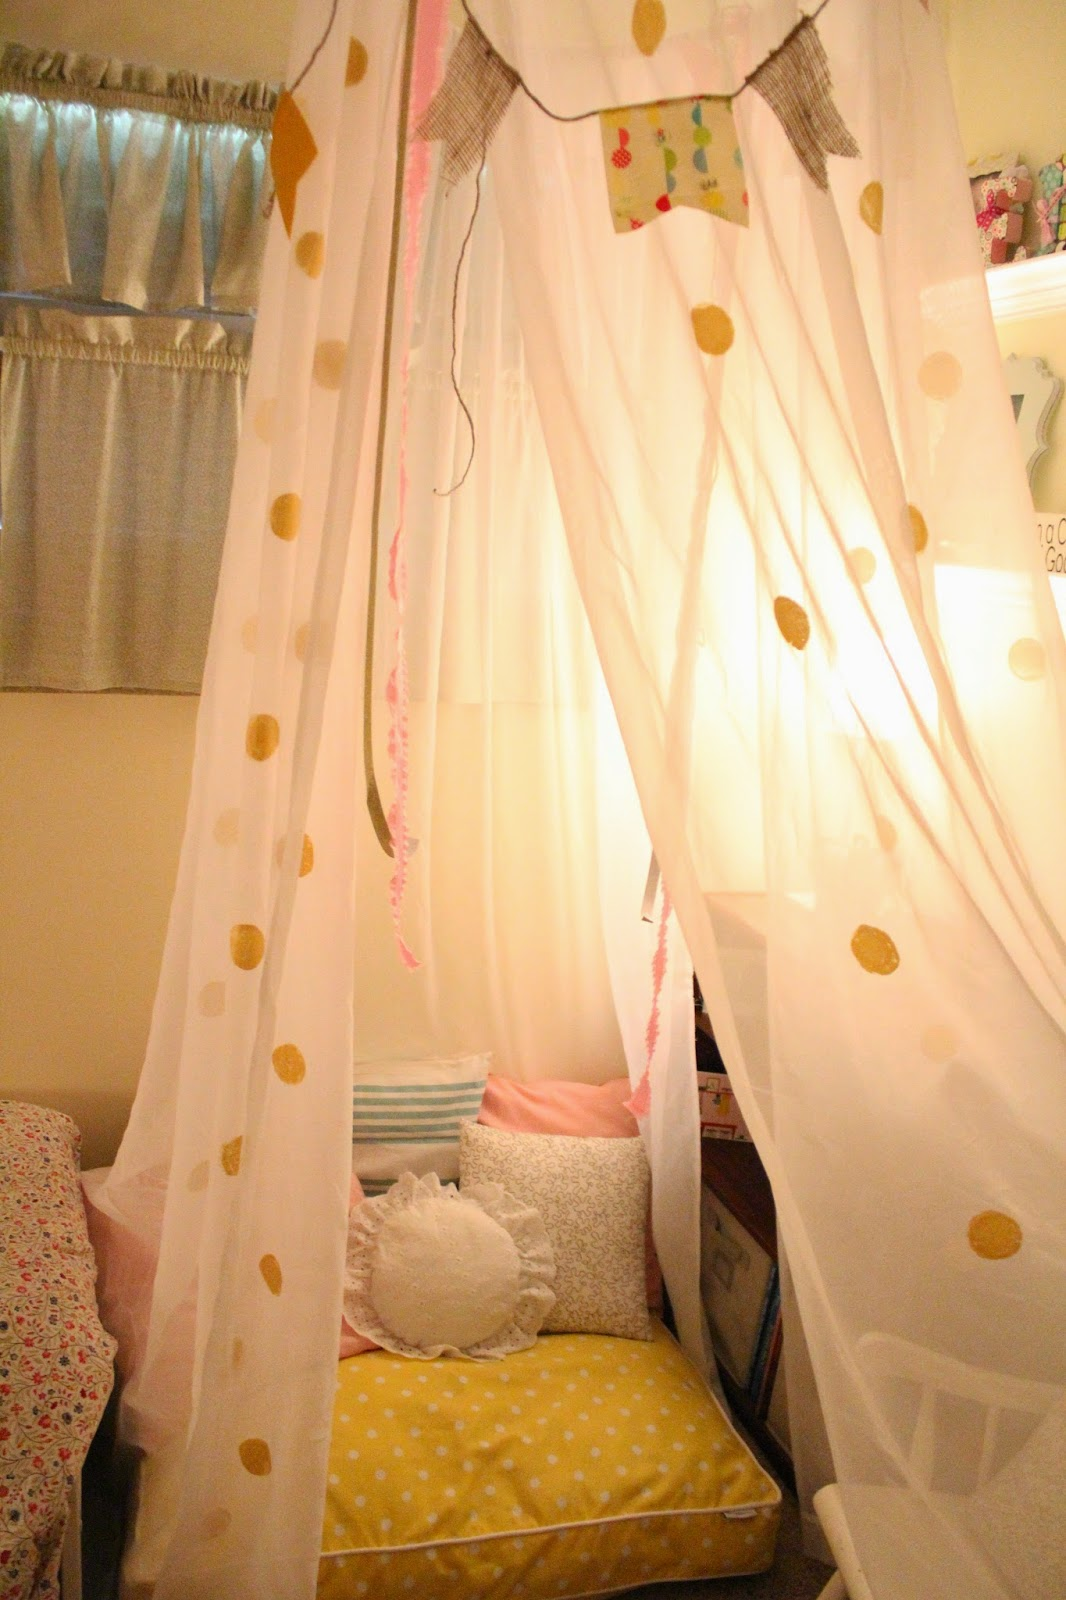 The canopy is so cozy at night when we turn on a l&. It instantly creates a little magical space. & Mommy Vignettes: DIY No-Sew Tent Canopy Tutorial